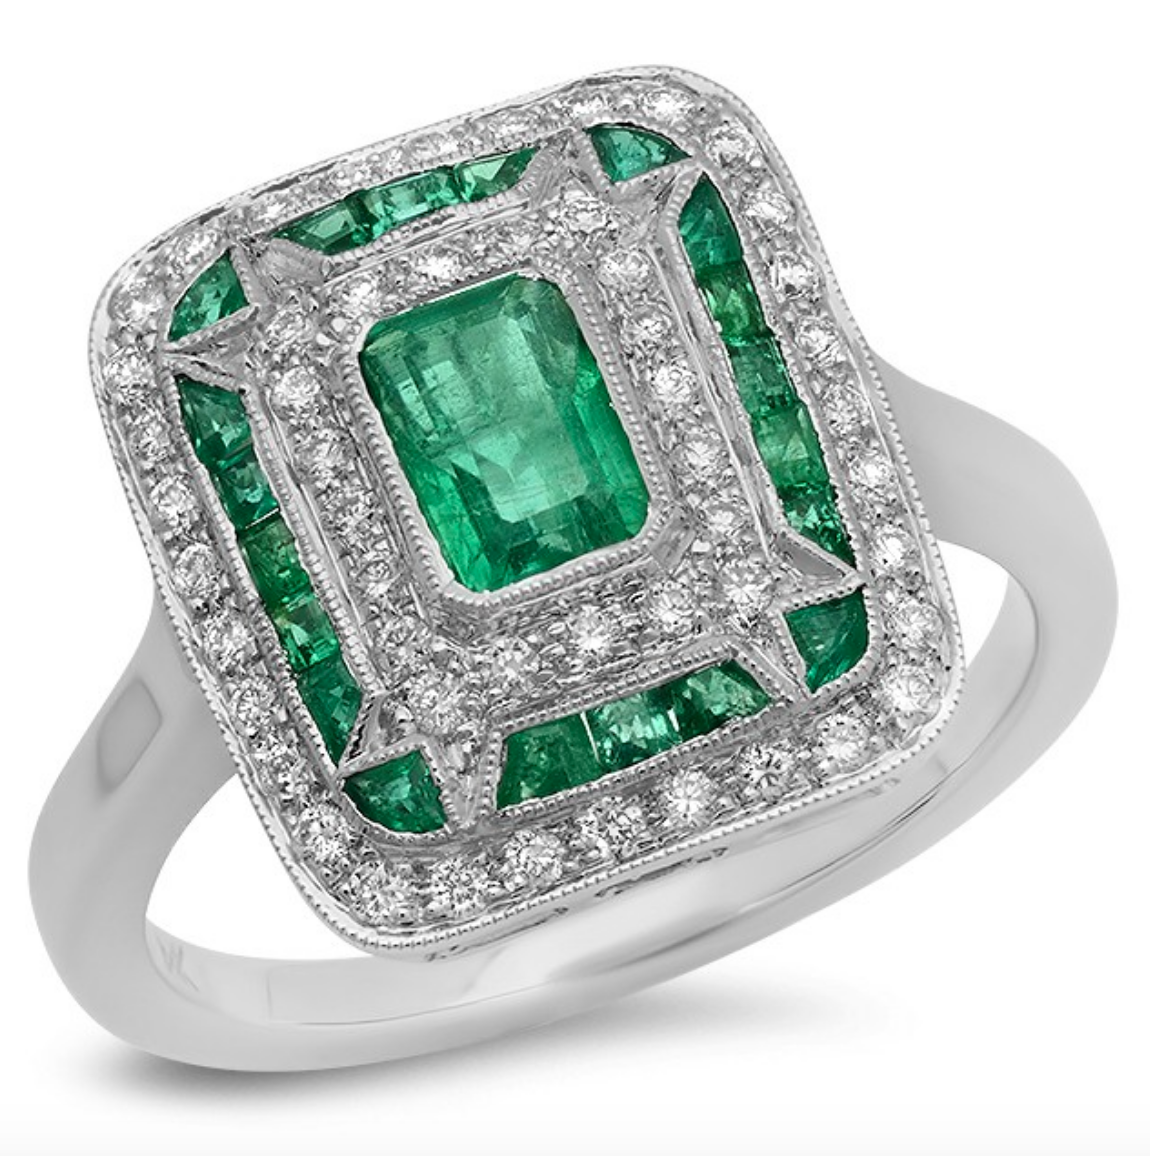 May Emerald Birthstone Jewelry & Folklore , Birthstone Engagement & Wedding Rings